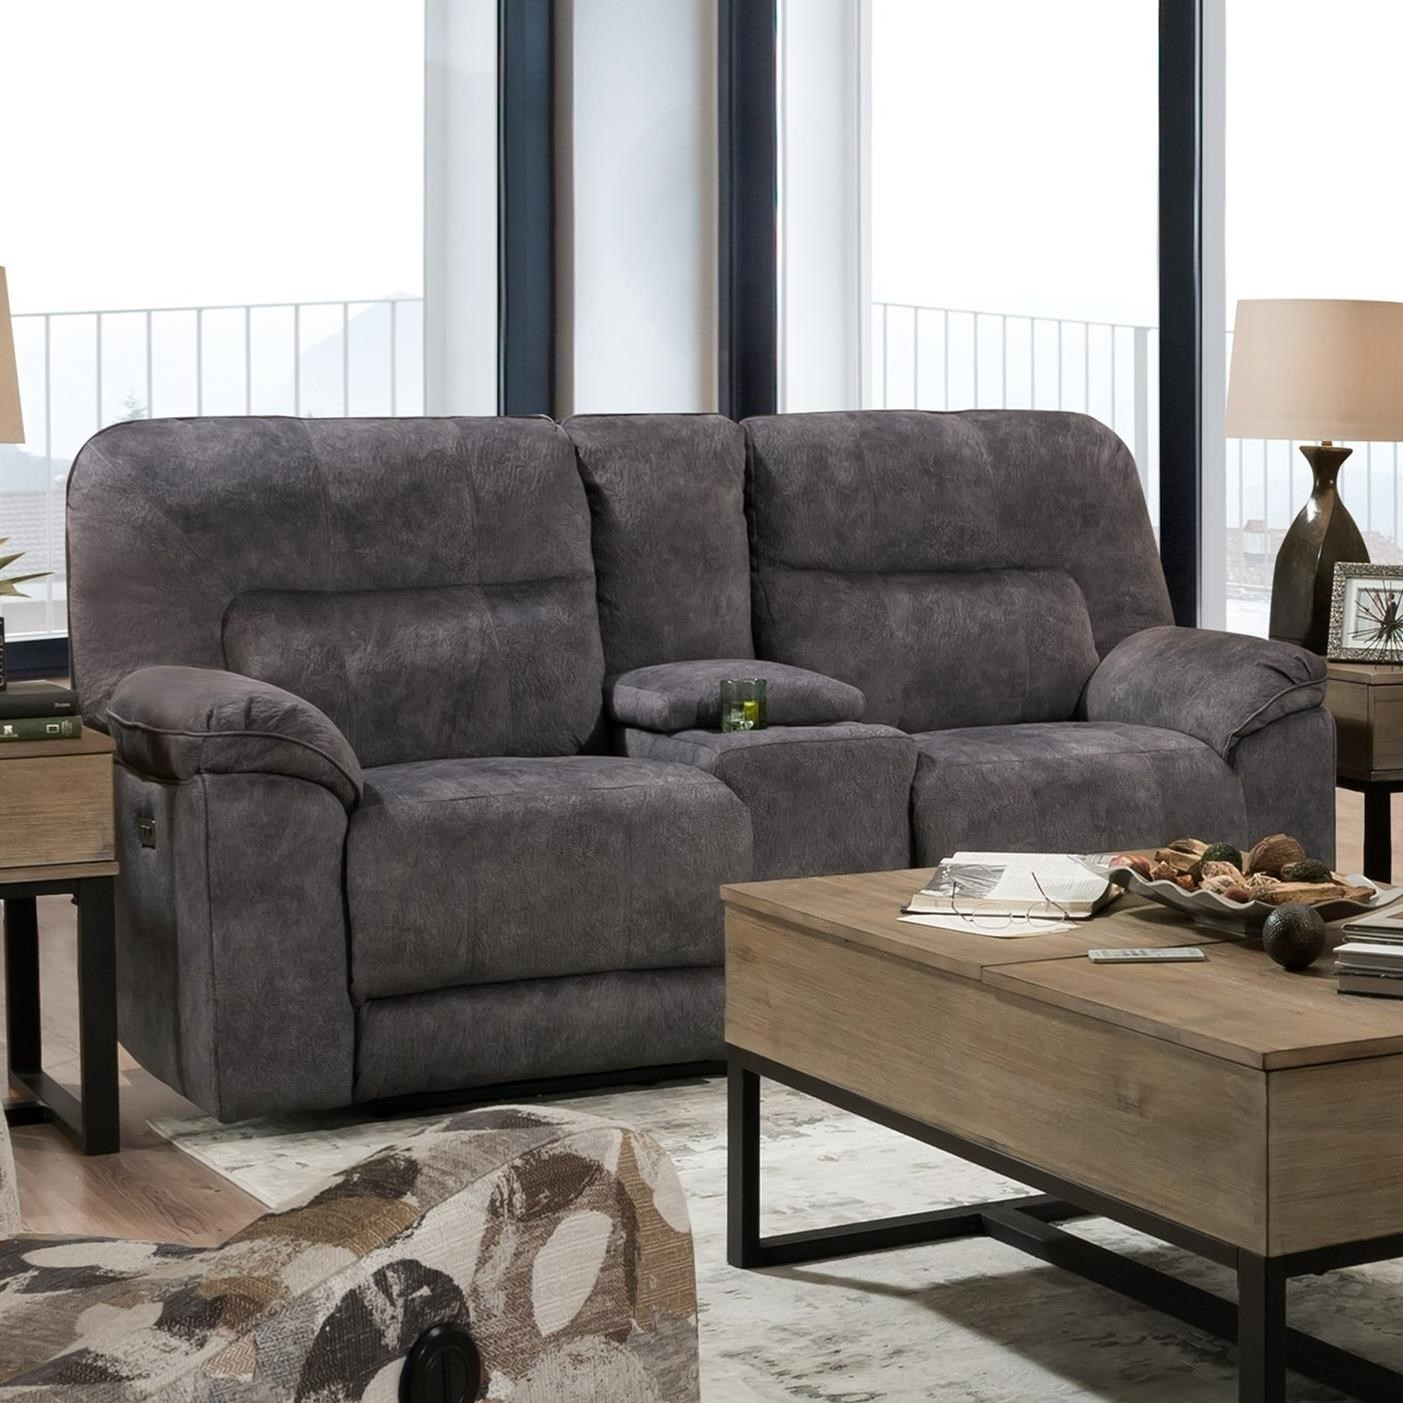 Top Gun Power Loveseat w/ Console by Southern Motion at Furniture Barn